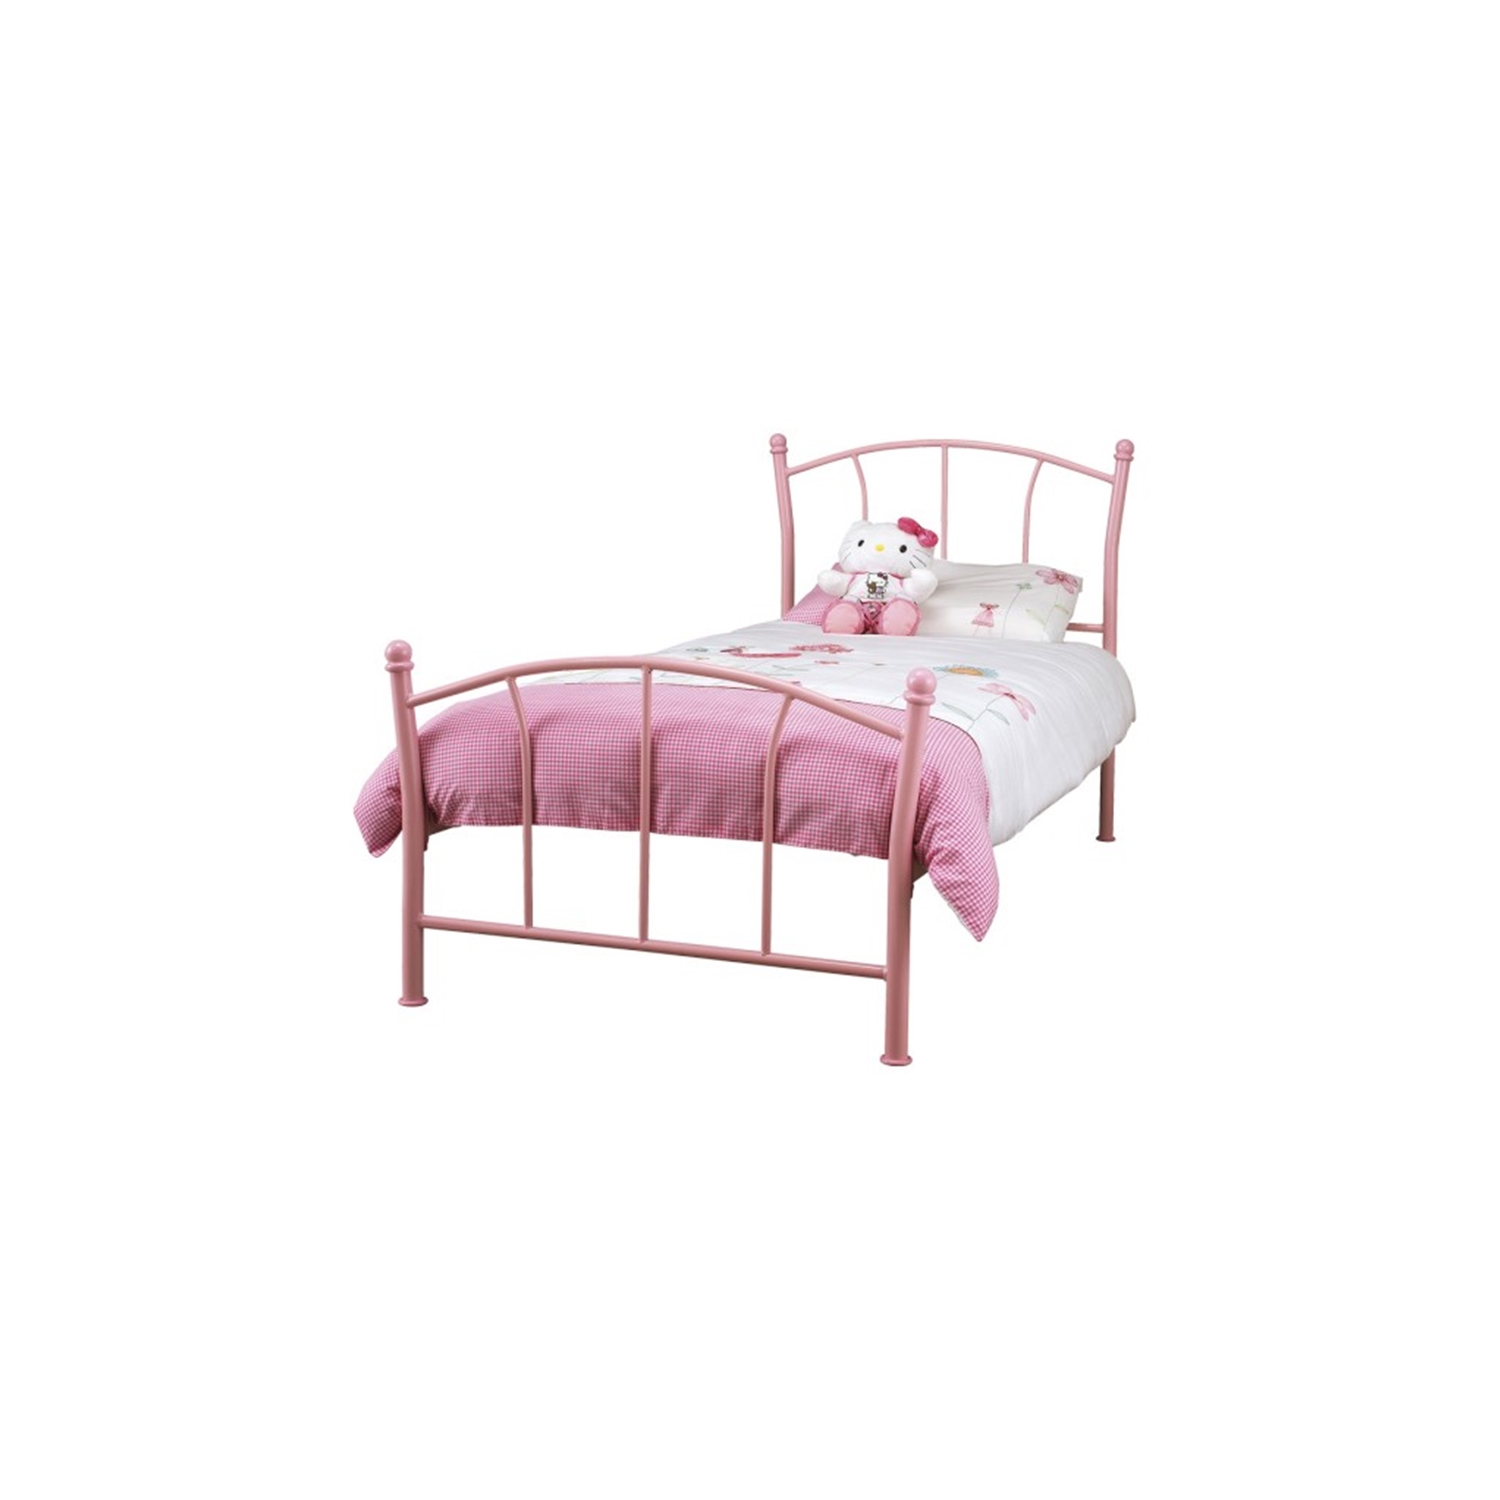 Image of Casa Penny Bed Frame, Single